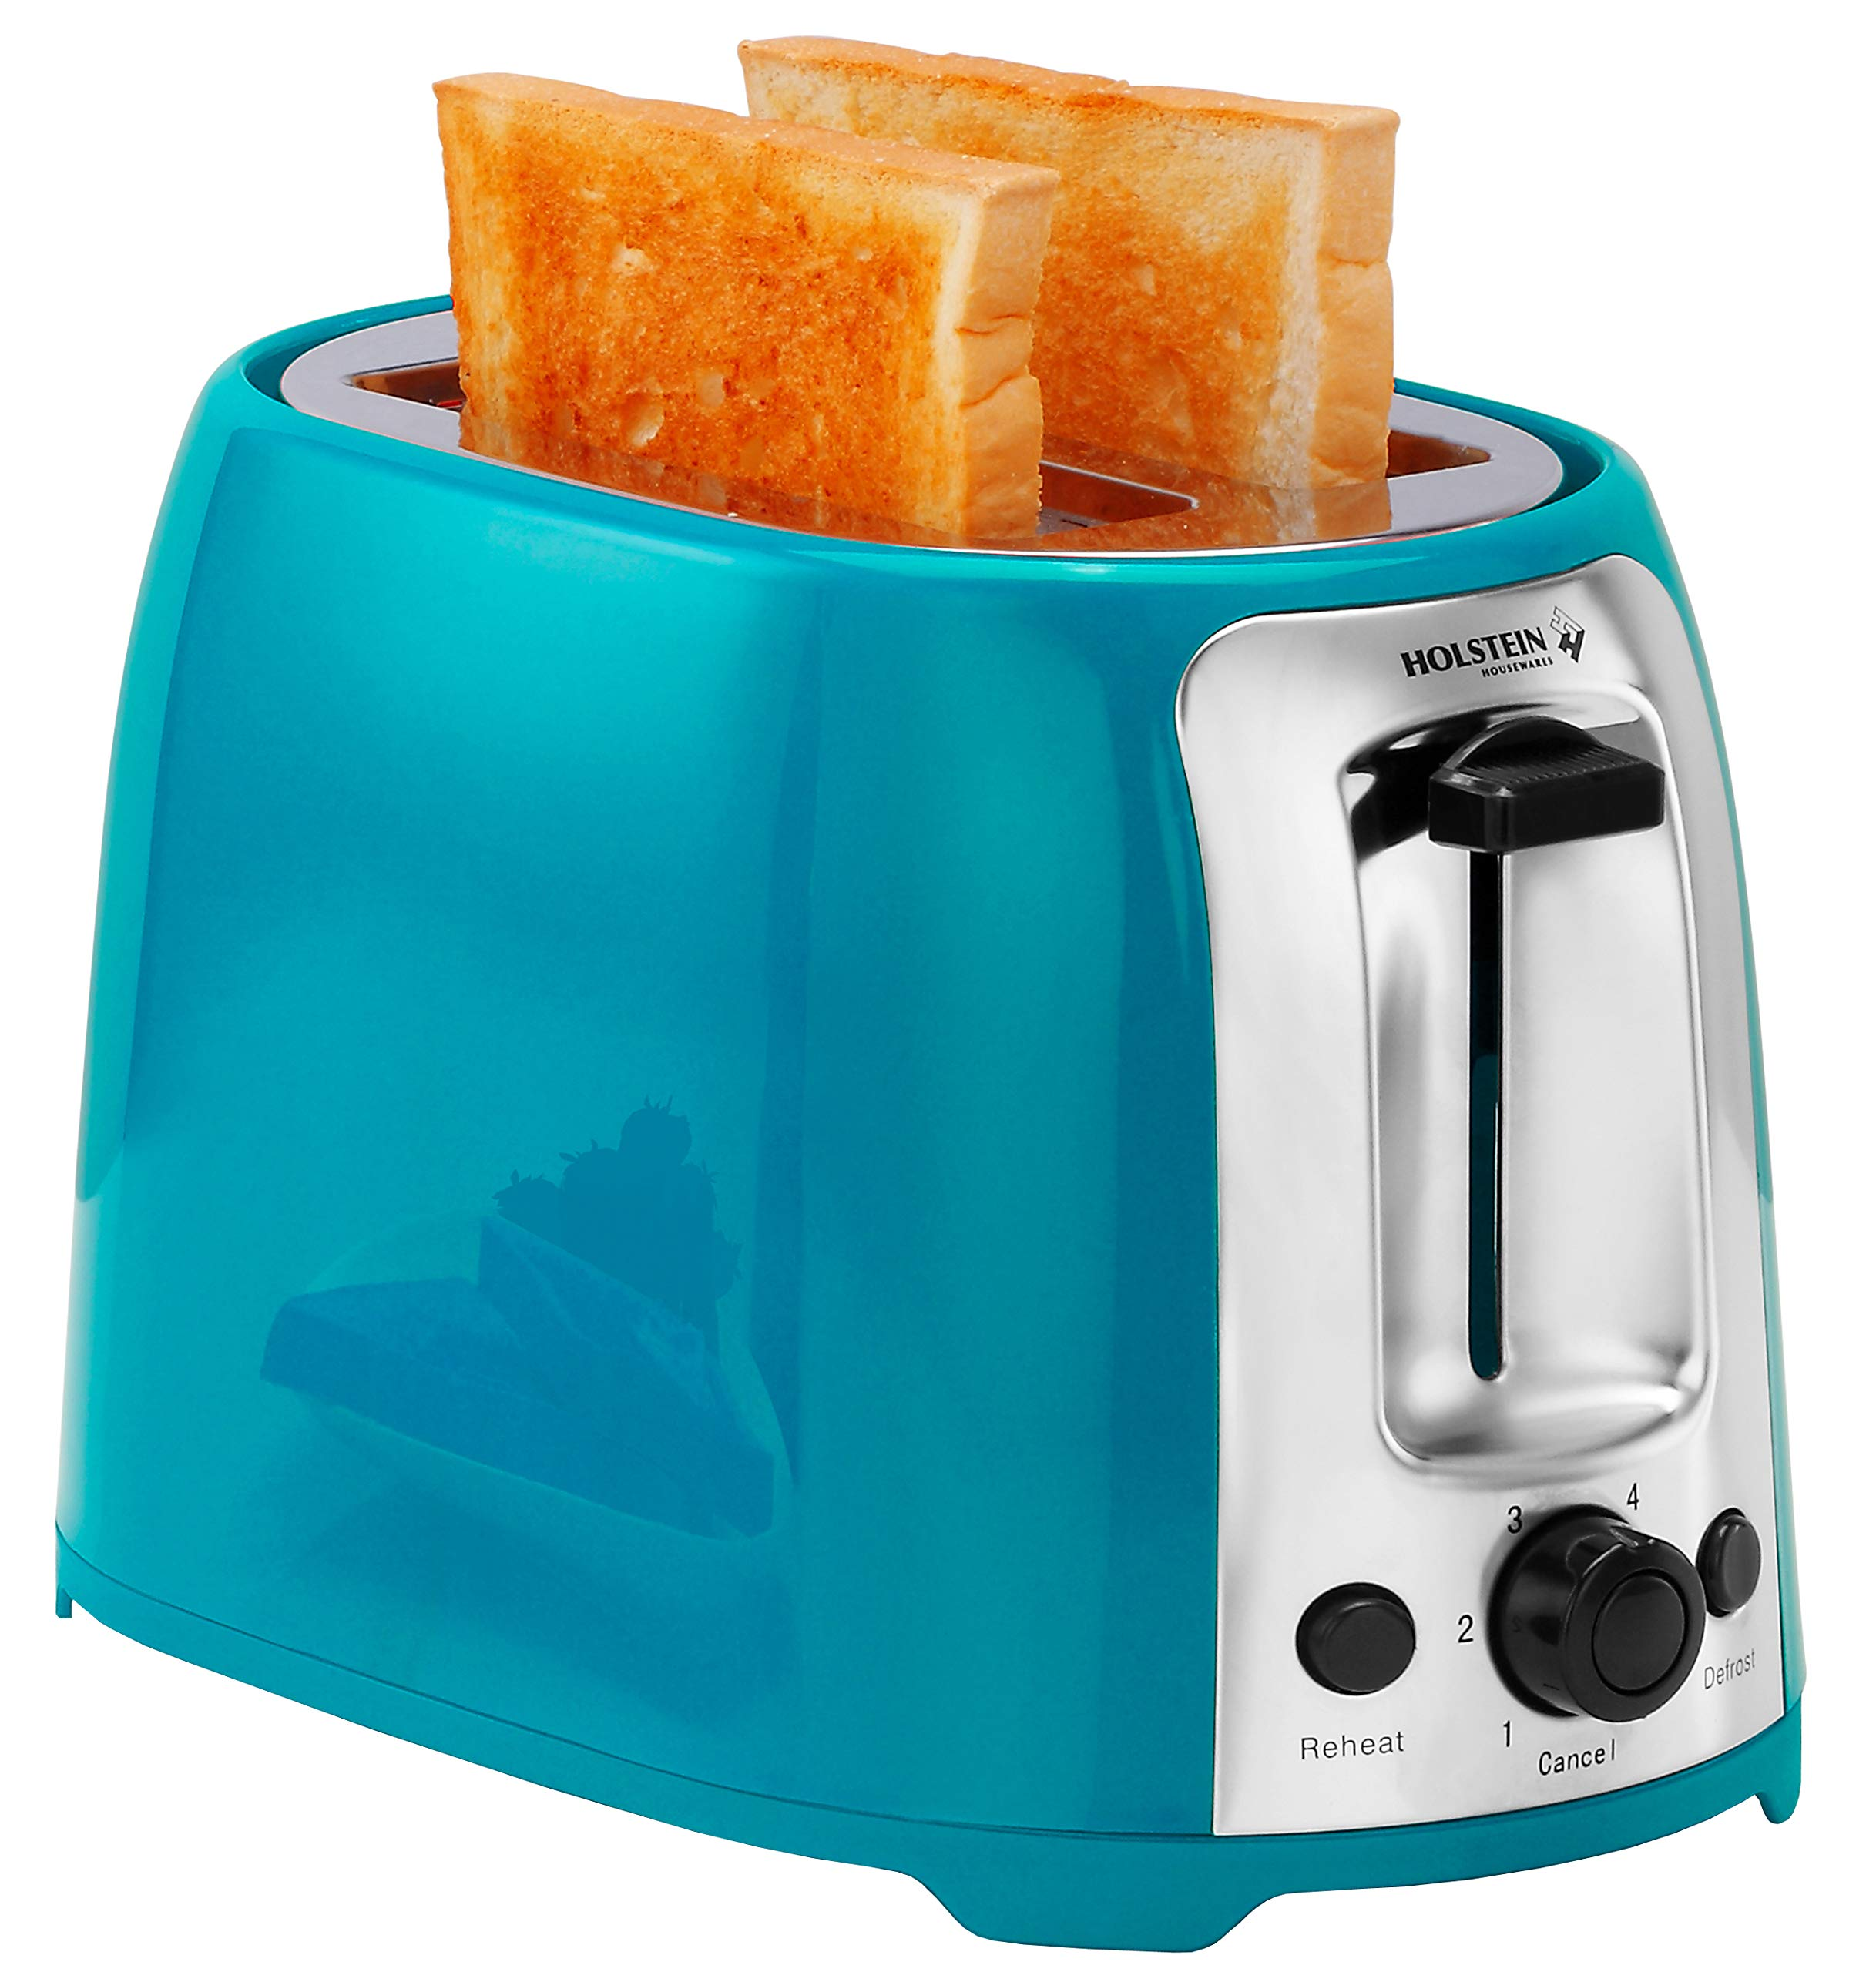 Holstein Housewares HH-09175001E 2 Slice Toaster with 7 Browning Levels, Teal by Holstein Housewares